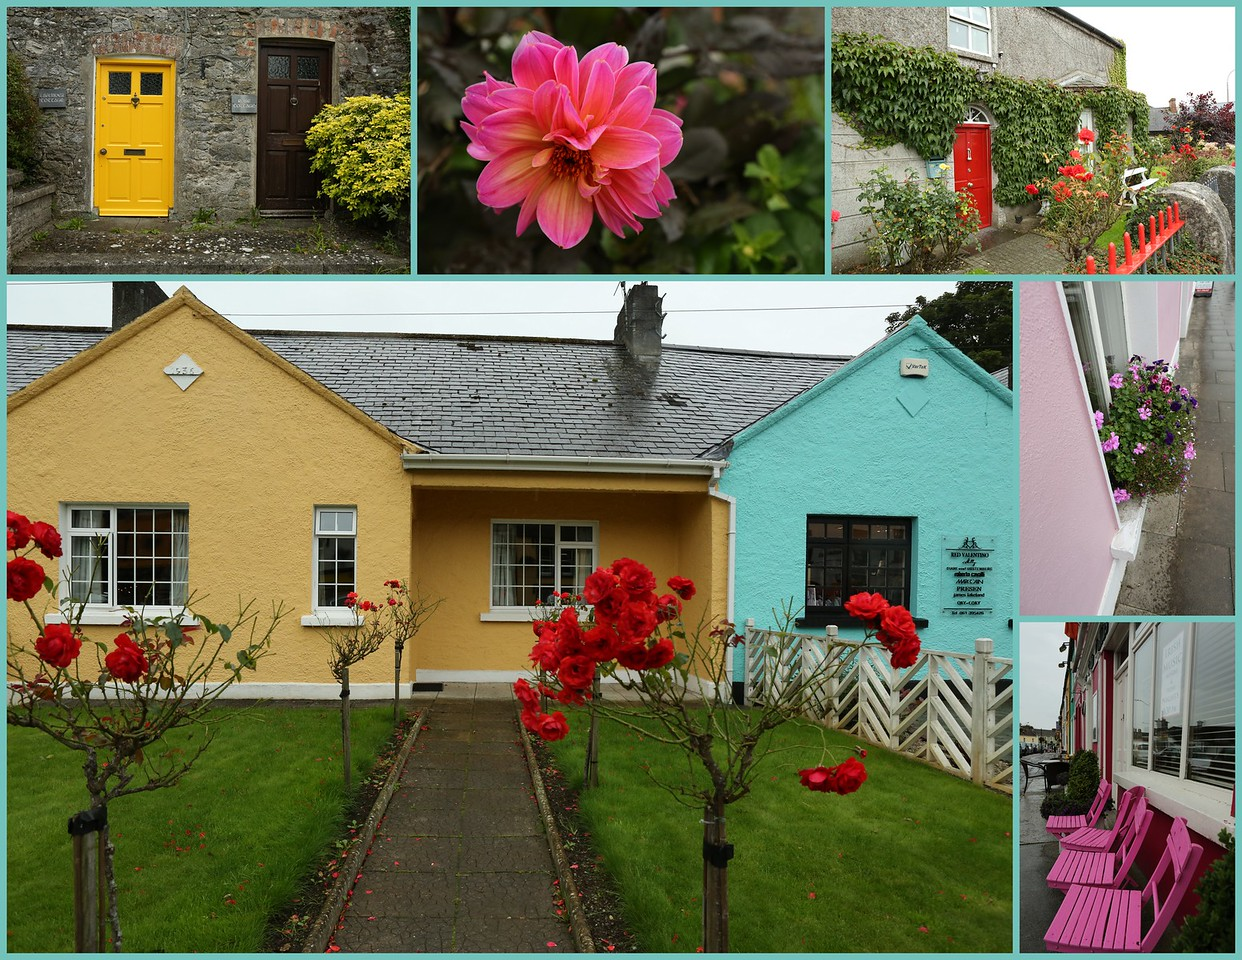 Colorful homes & gardens in the village of Adare.